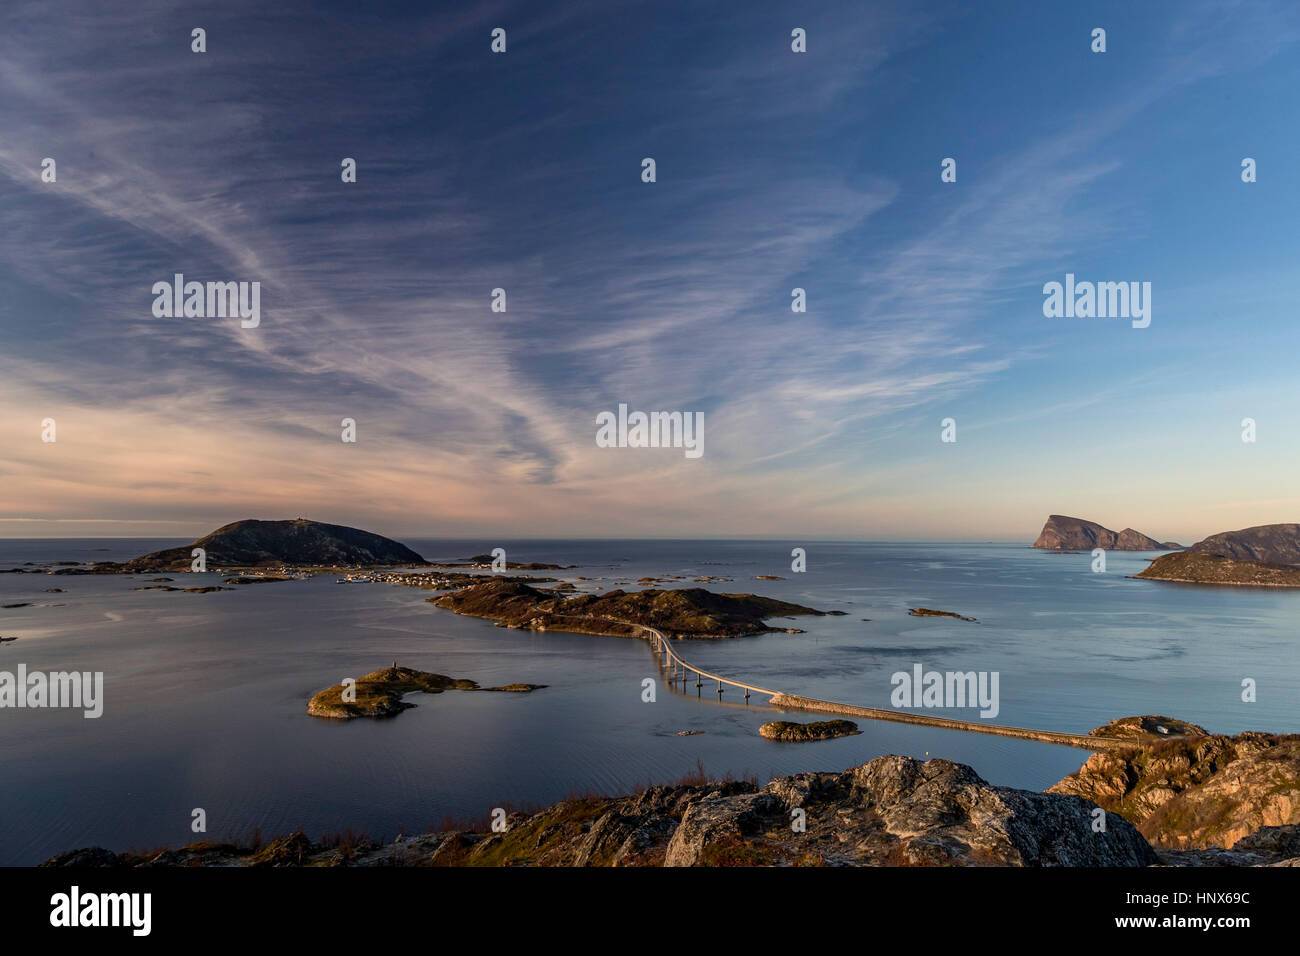 View of famous Sommaroy Bridge crossing from Kvaloya Island to Sommaroy Island in autumn, Arctic Norway - Stock Image